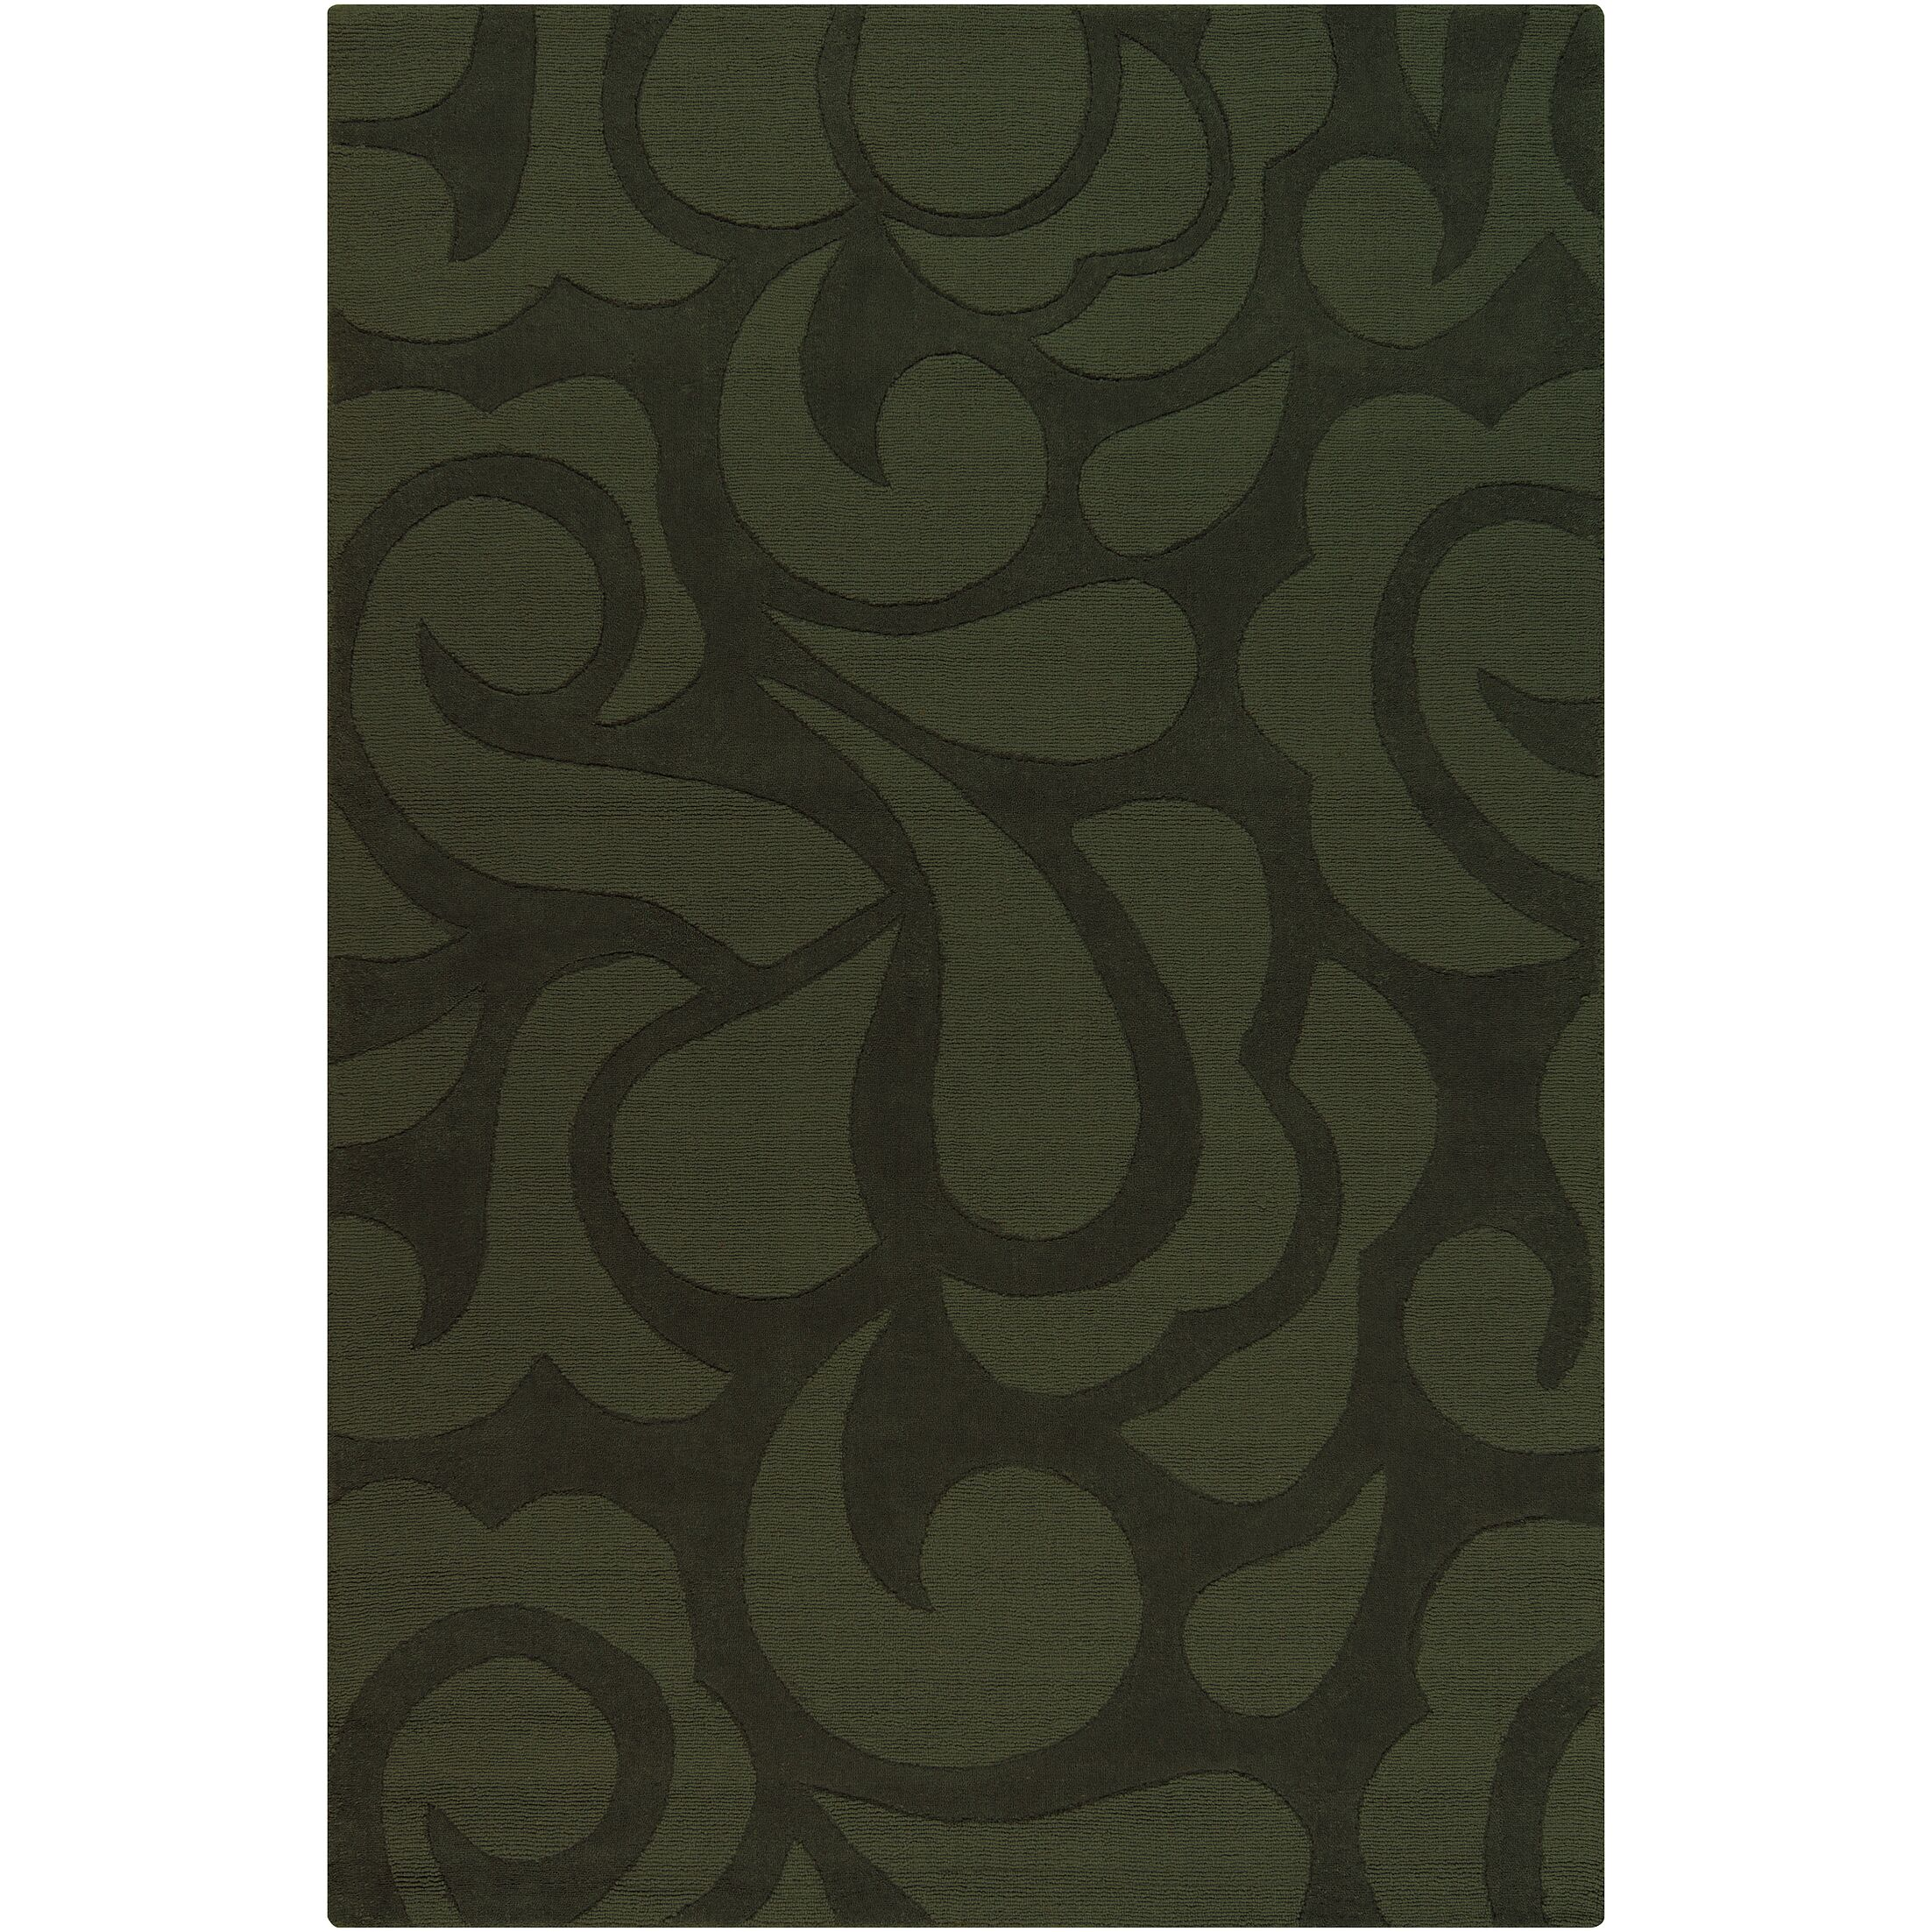 Stehle Green Area Rug Rug Size: 5' x 7'6